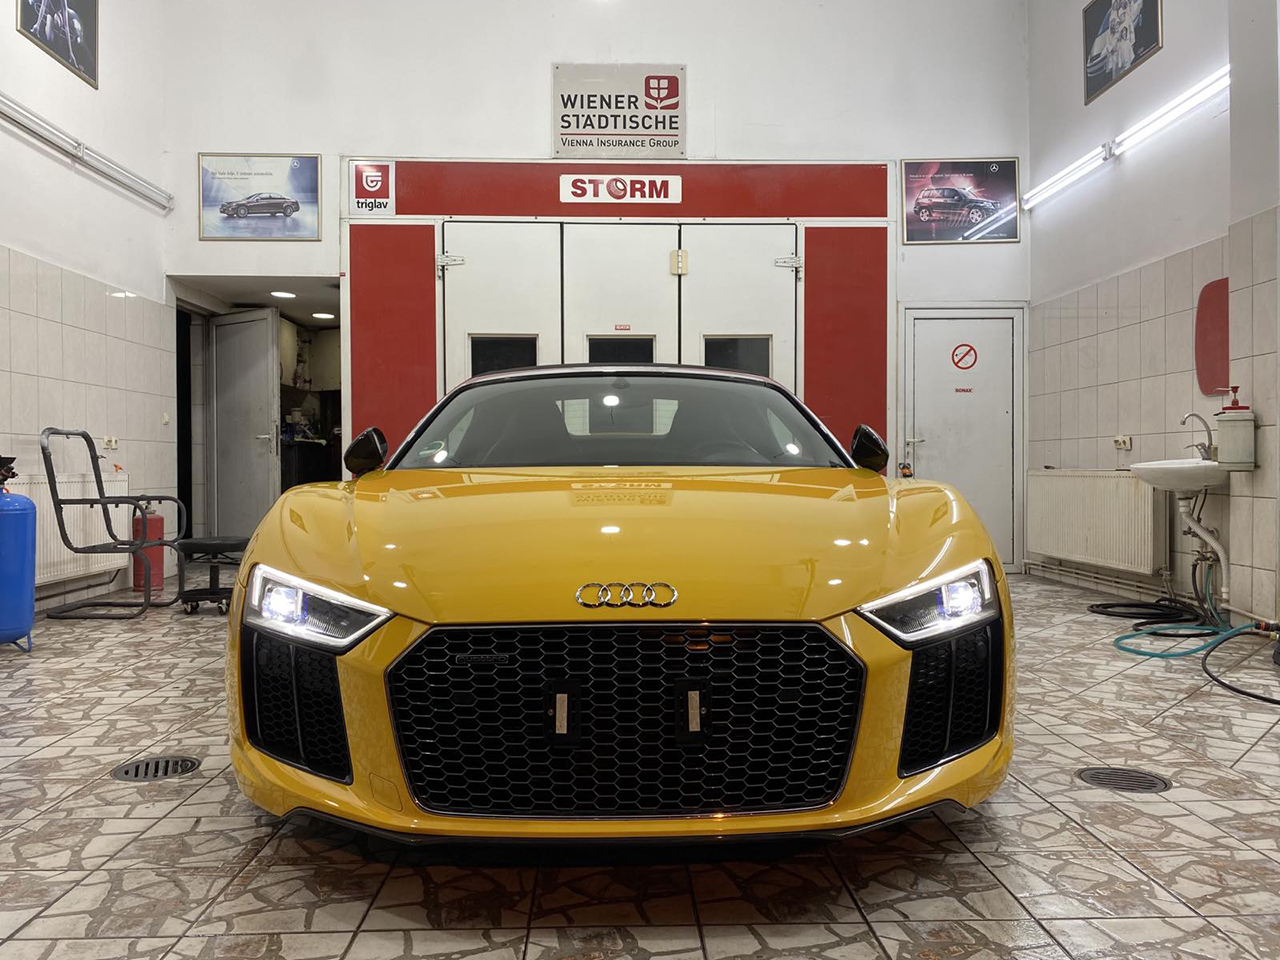 CC MUMDZIC TAXI services Novi Pazar - Photo 3